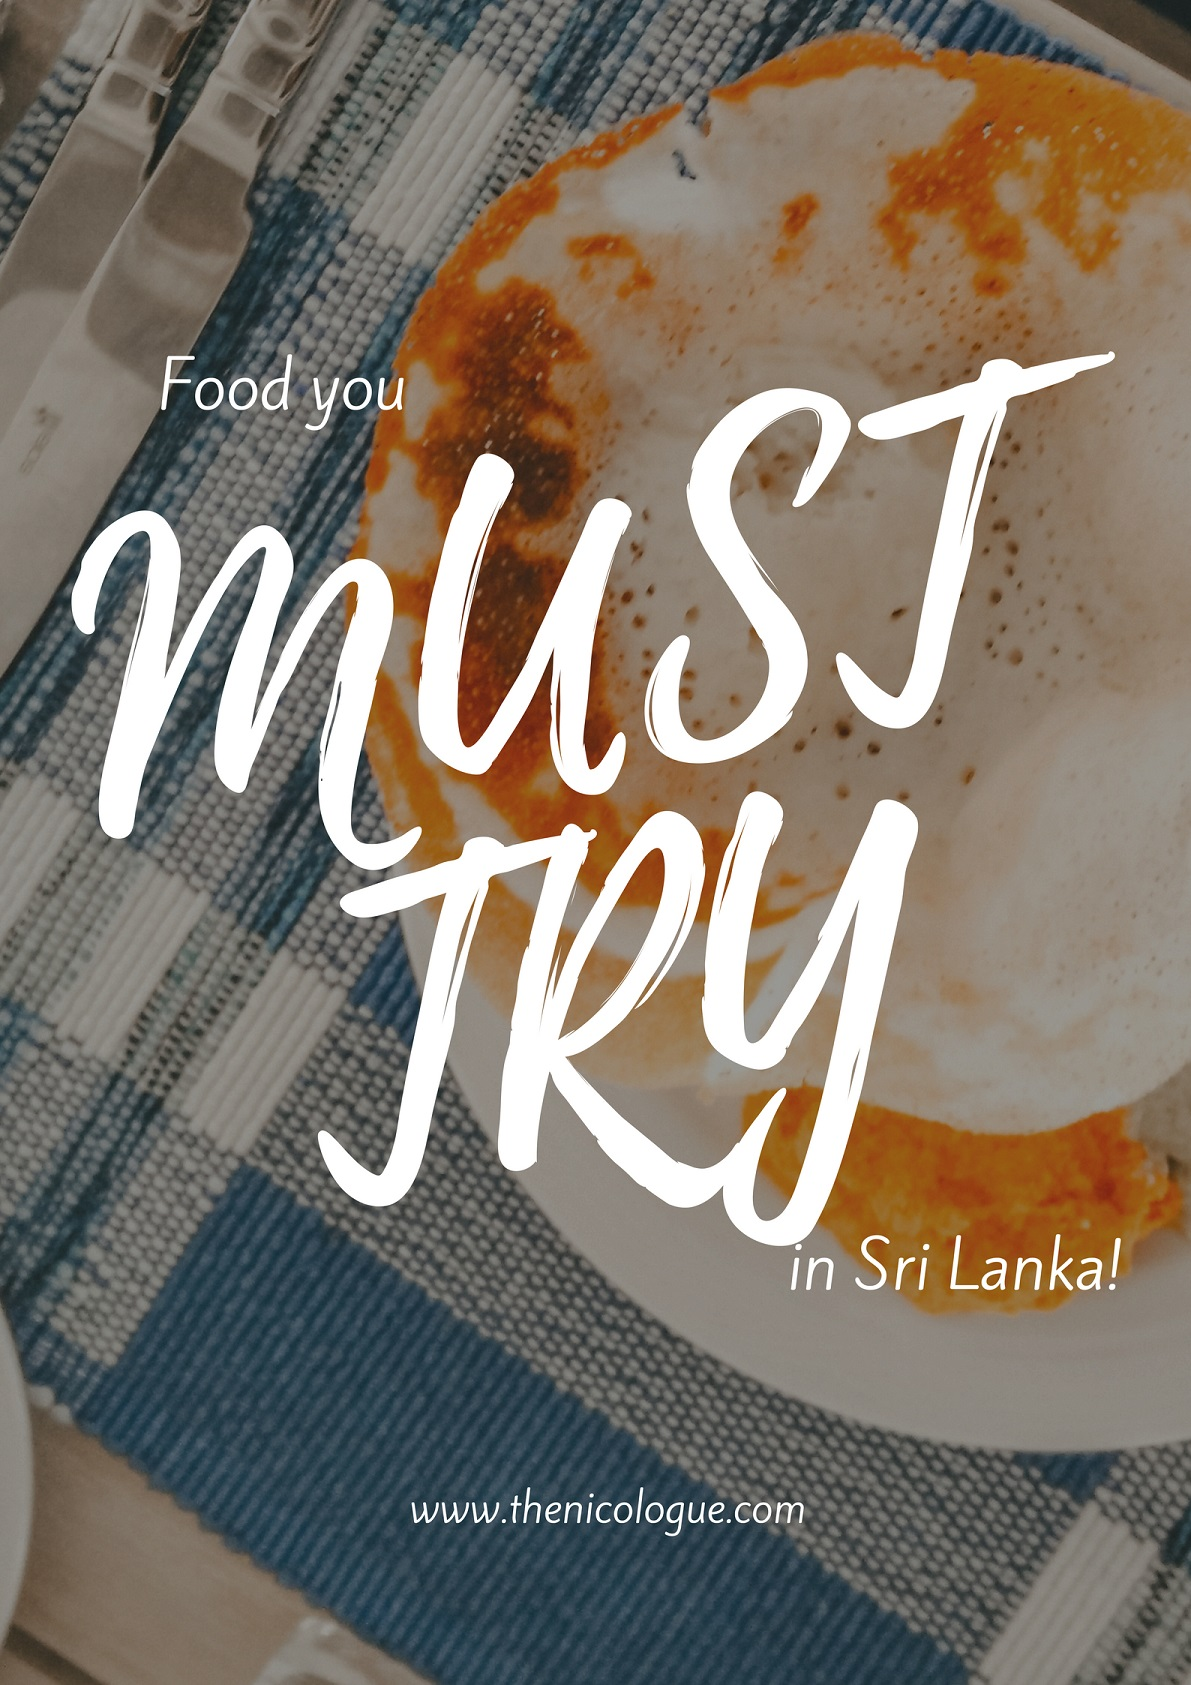 Food you must try in Sri Lanka